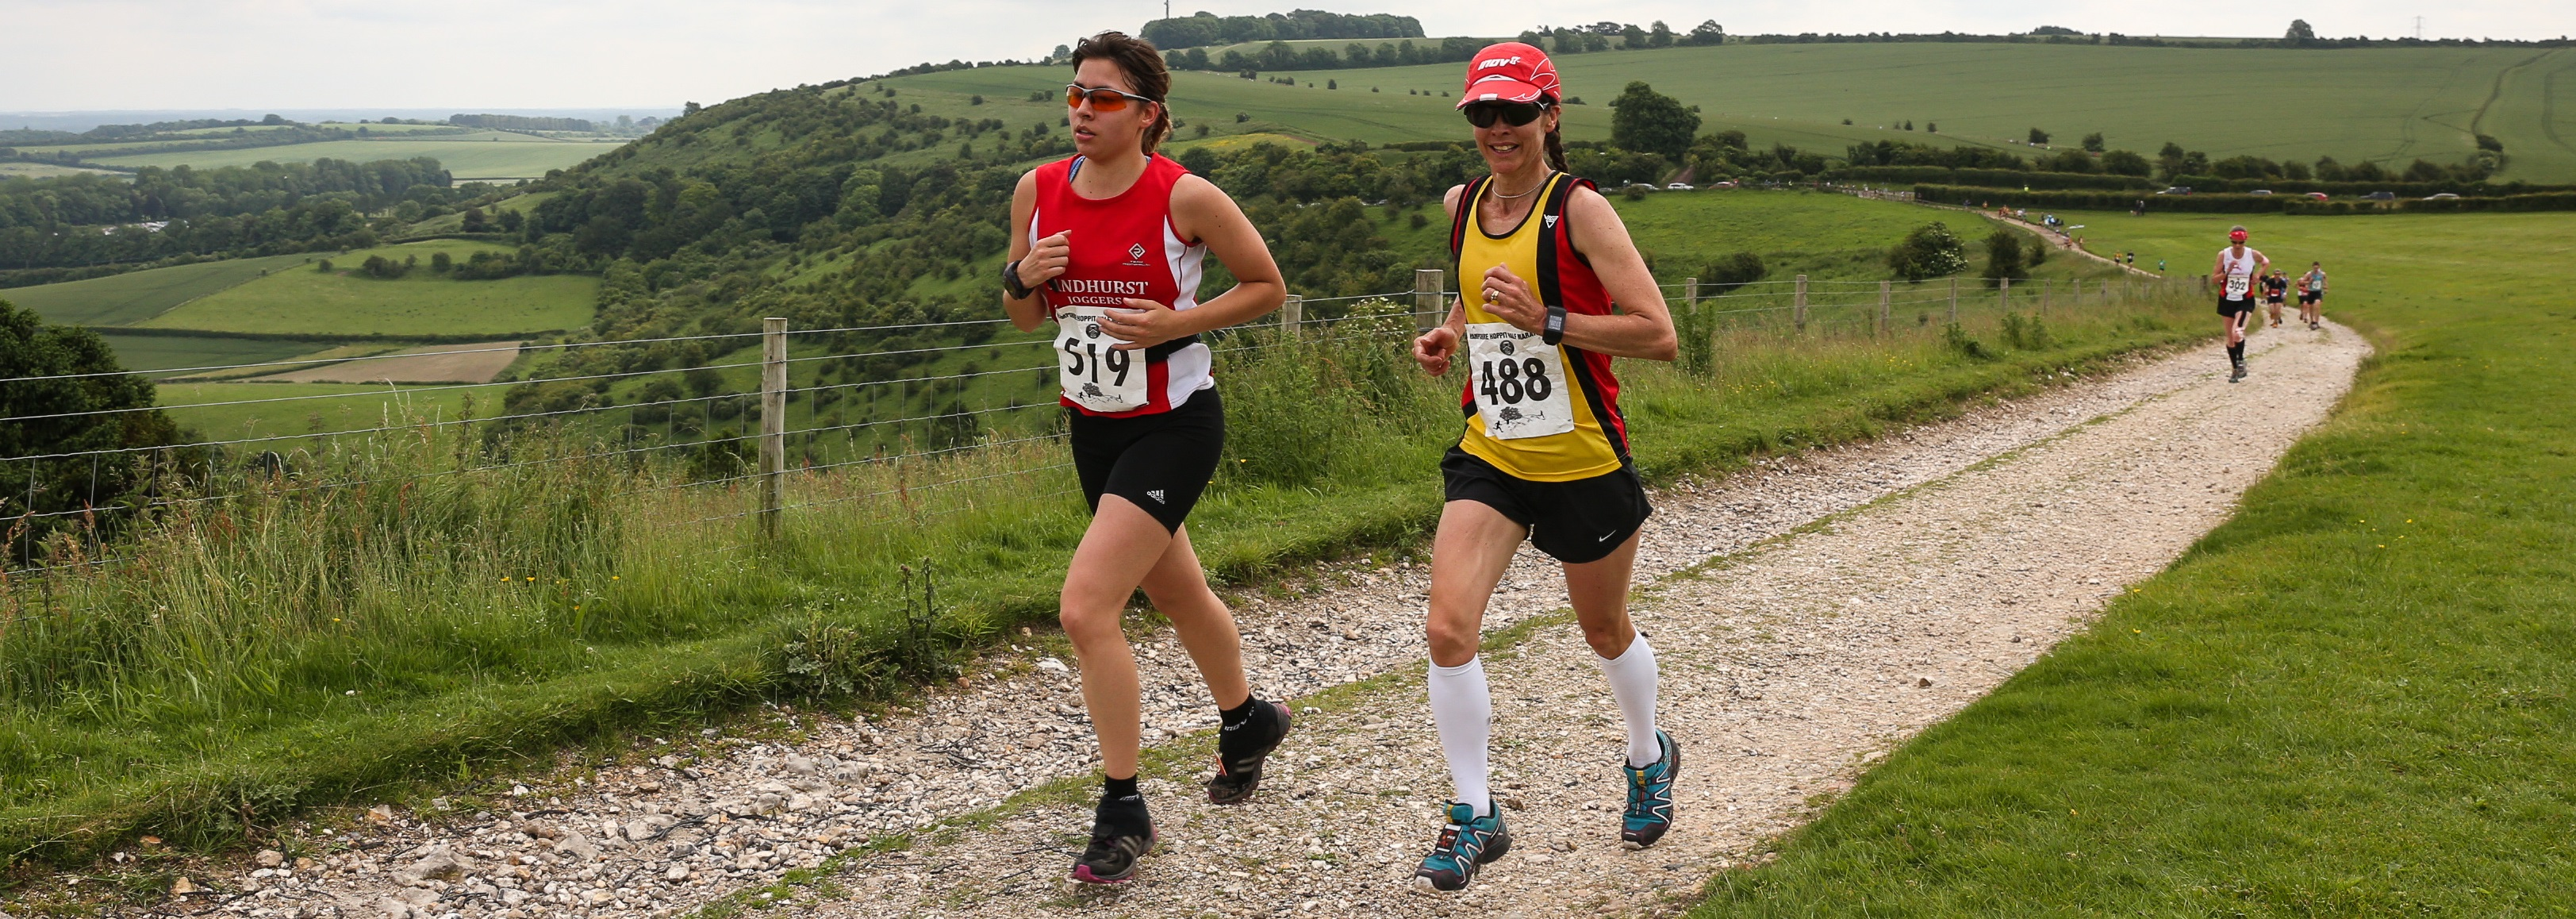 The Hampshire Hoppit – Trail Marathon and Half Marathon